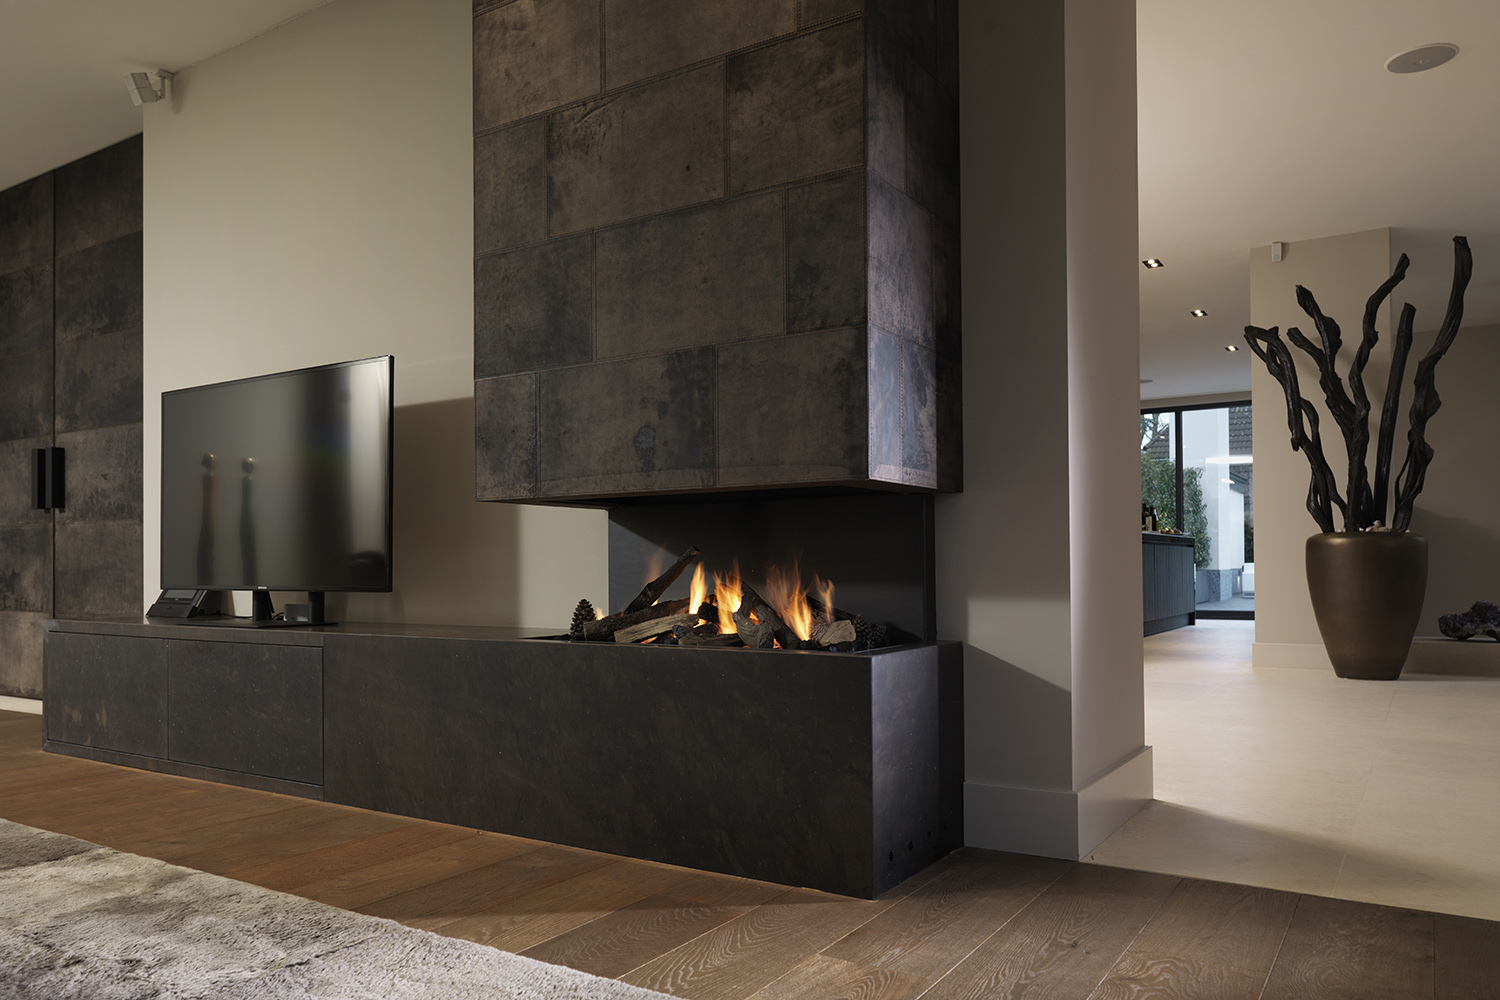 modern living room interior with fireplace